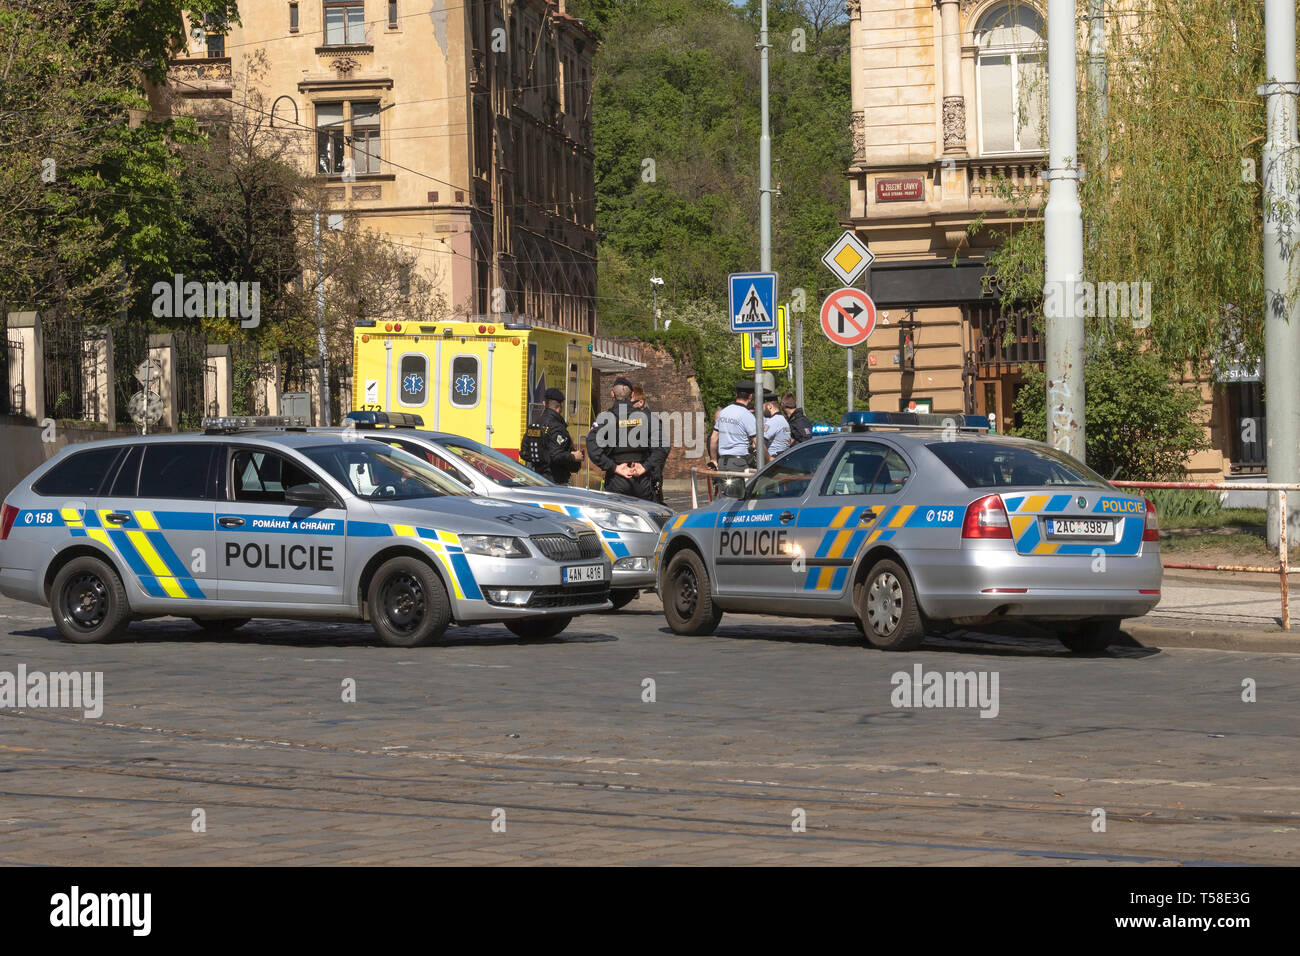 Accident across the entrance to the Royal Gardens in Prague districk Malostranska Europe. Police and ambulance and the city architecture. - Stock Image